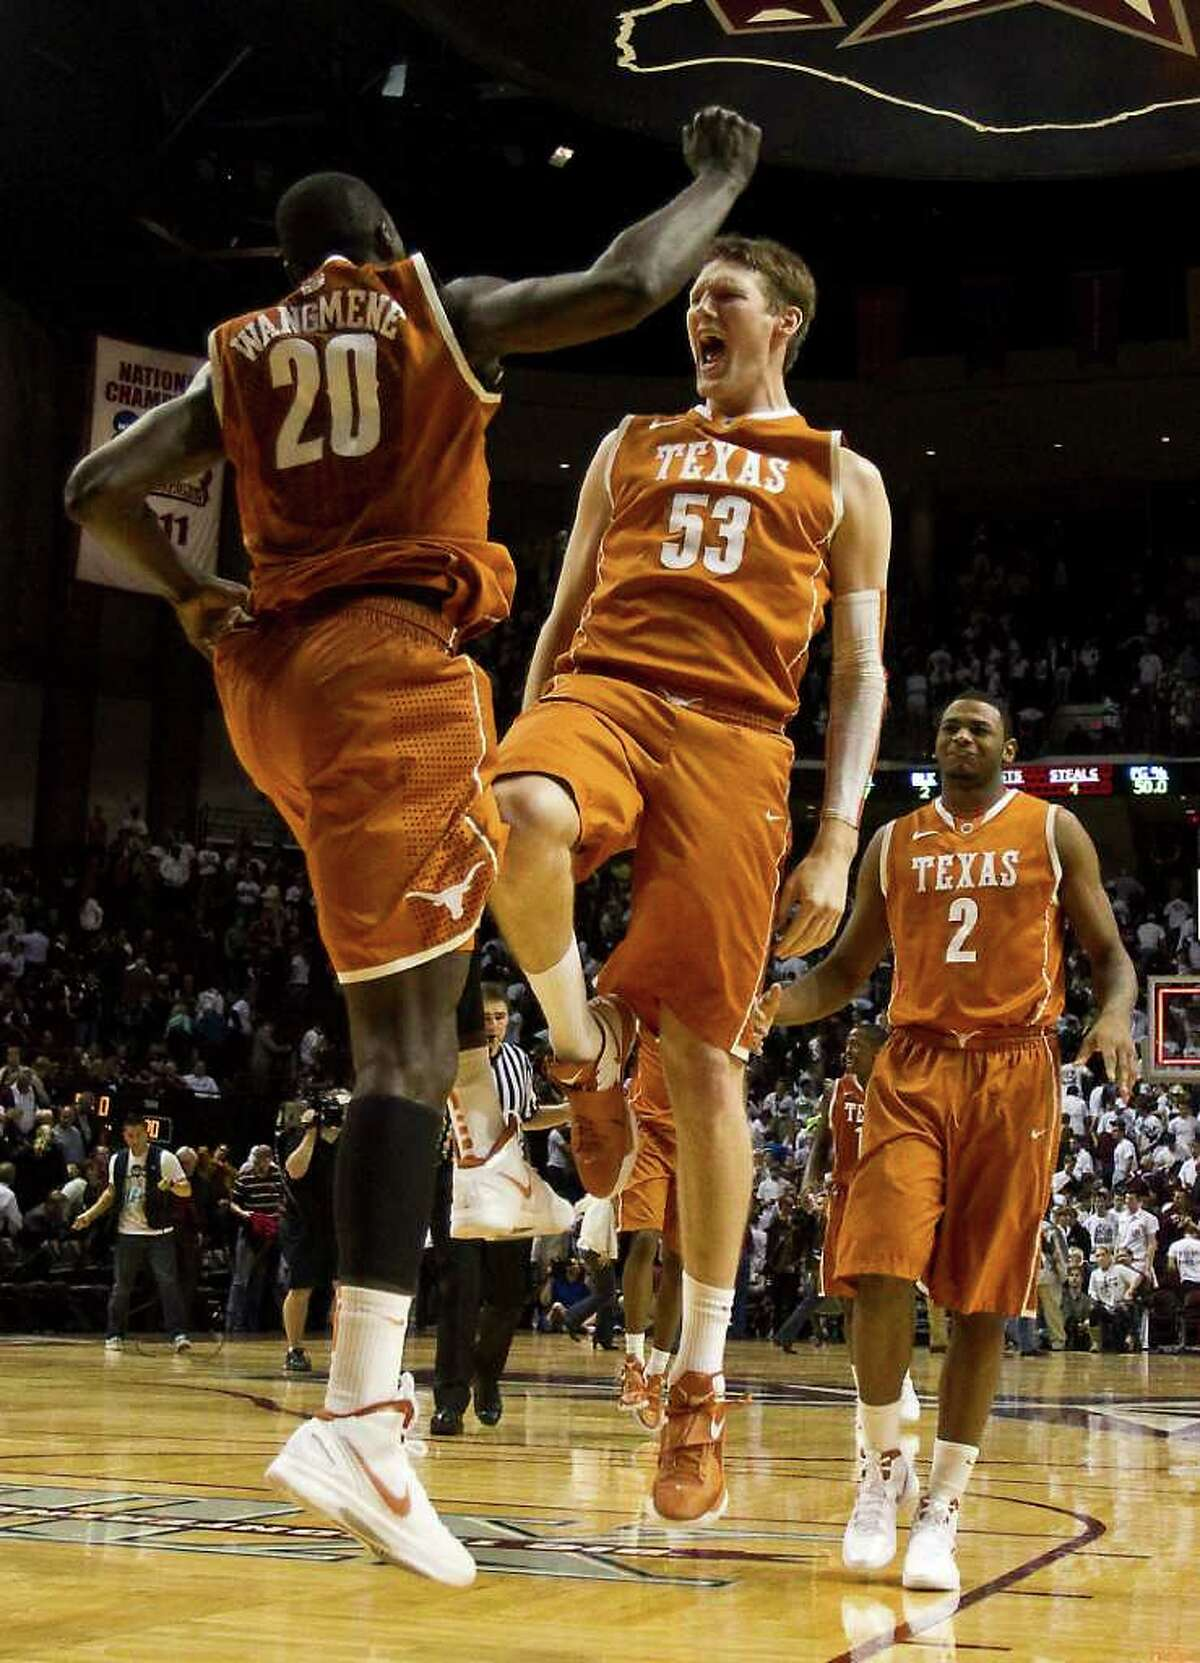 Texas forward/center Alexis Wangmene (20) and Texas forward/center Clint Chapman (53) celebrate after beating Texas A&M 70-68 in a NCAA basketball game, Monday, Feb. 6, 2012, in Reed Arena in College Station. Texas won 70-68.